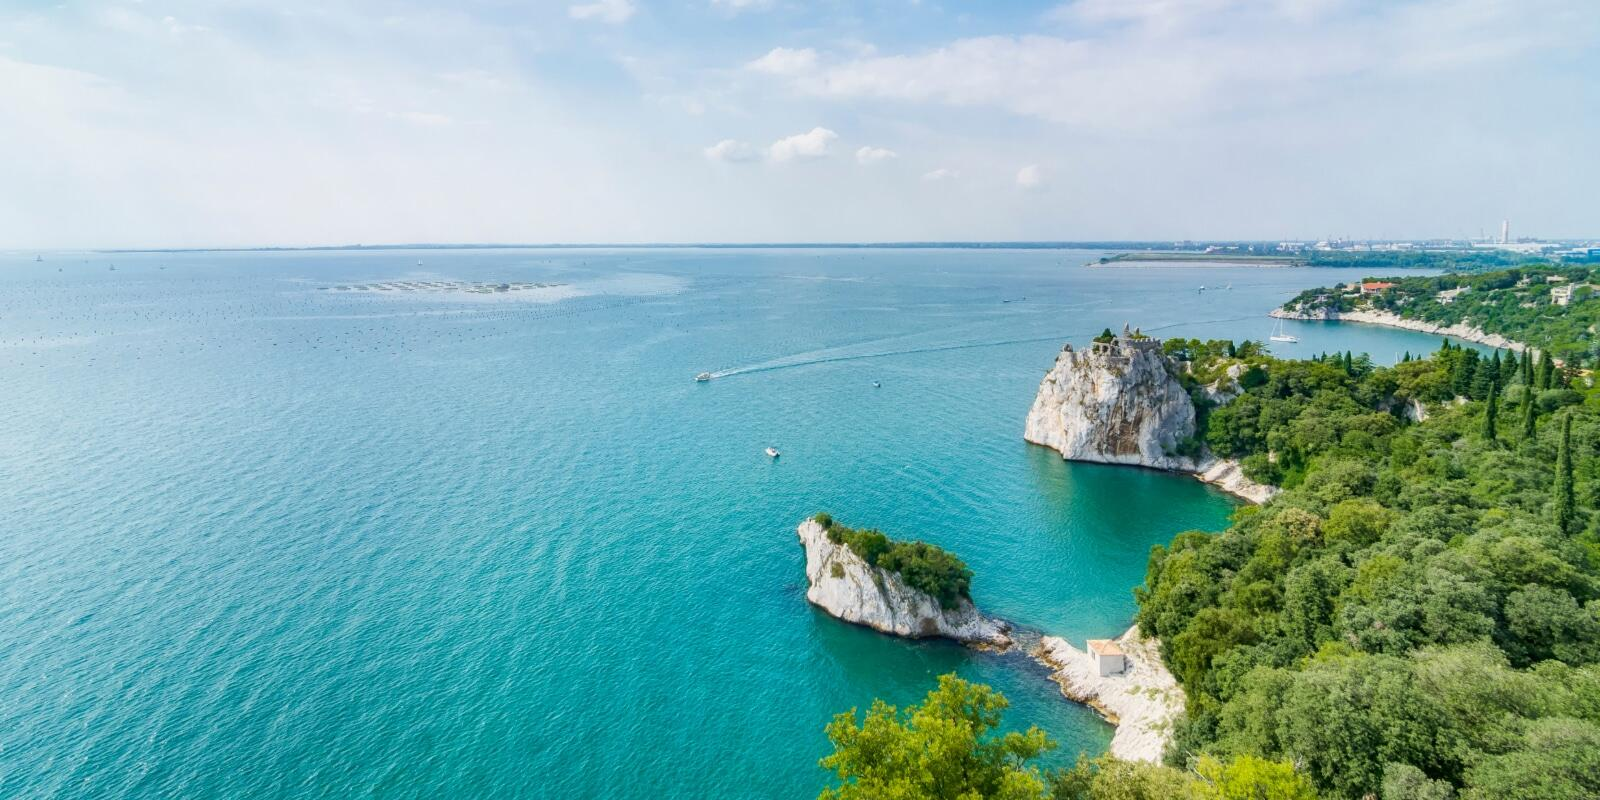 BLUE AREA! A day sailing among the scents and wonders of the Gulf of Trieste!